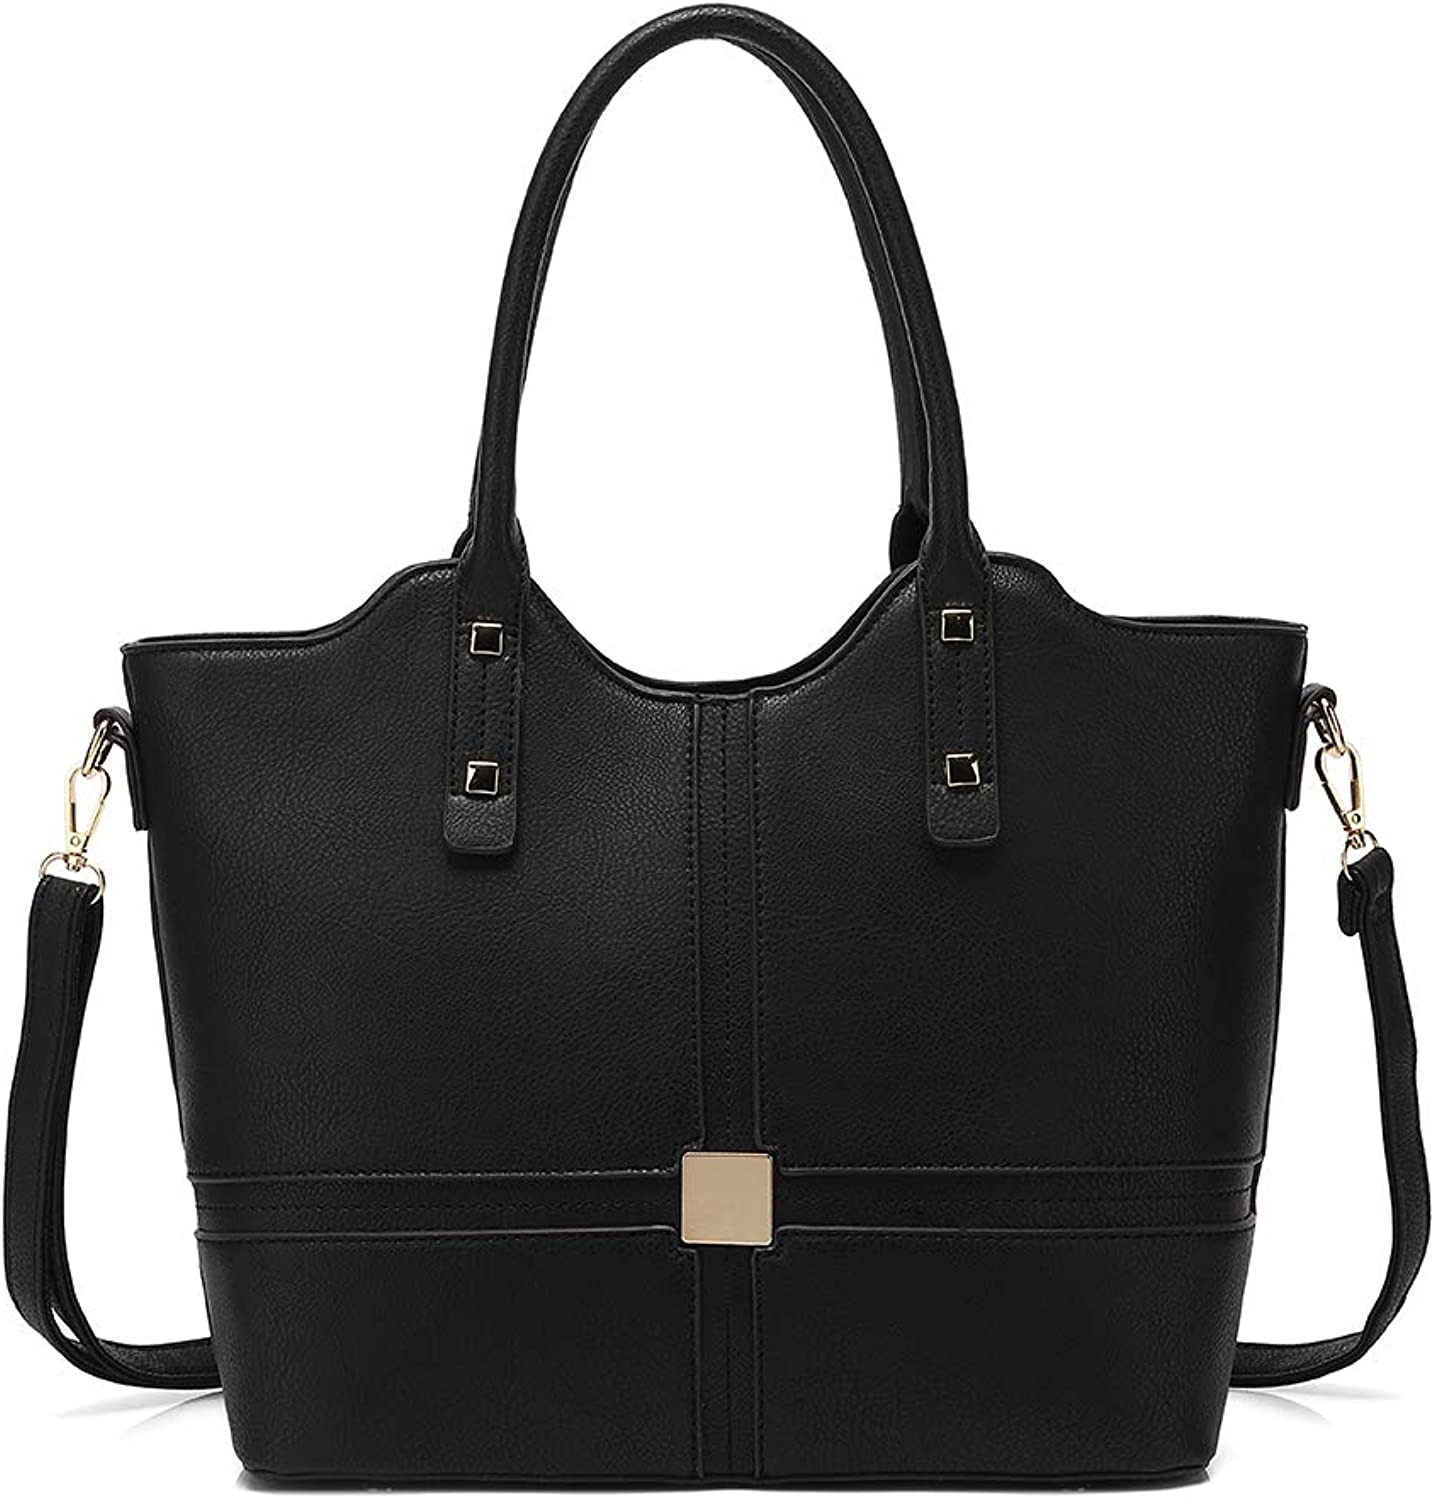 Mia 40% Miami Mall OFF Cheap Sale K Collection Crossbody Bags for S Handbags Purses and Women